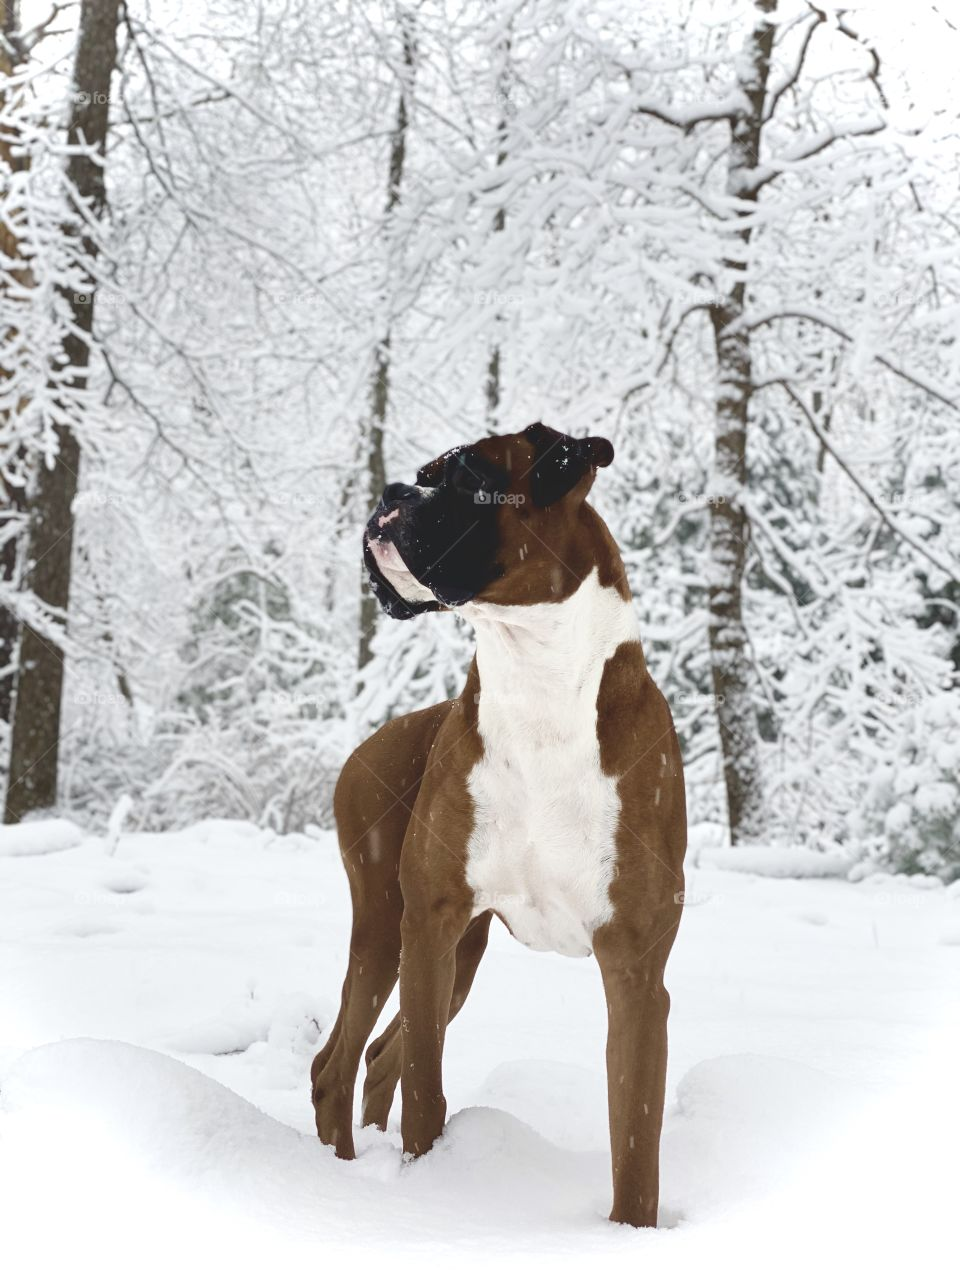 Stud in a snowstorm